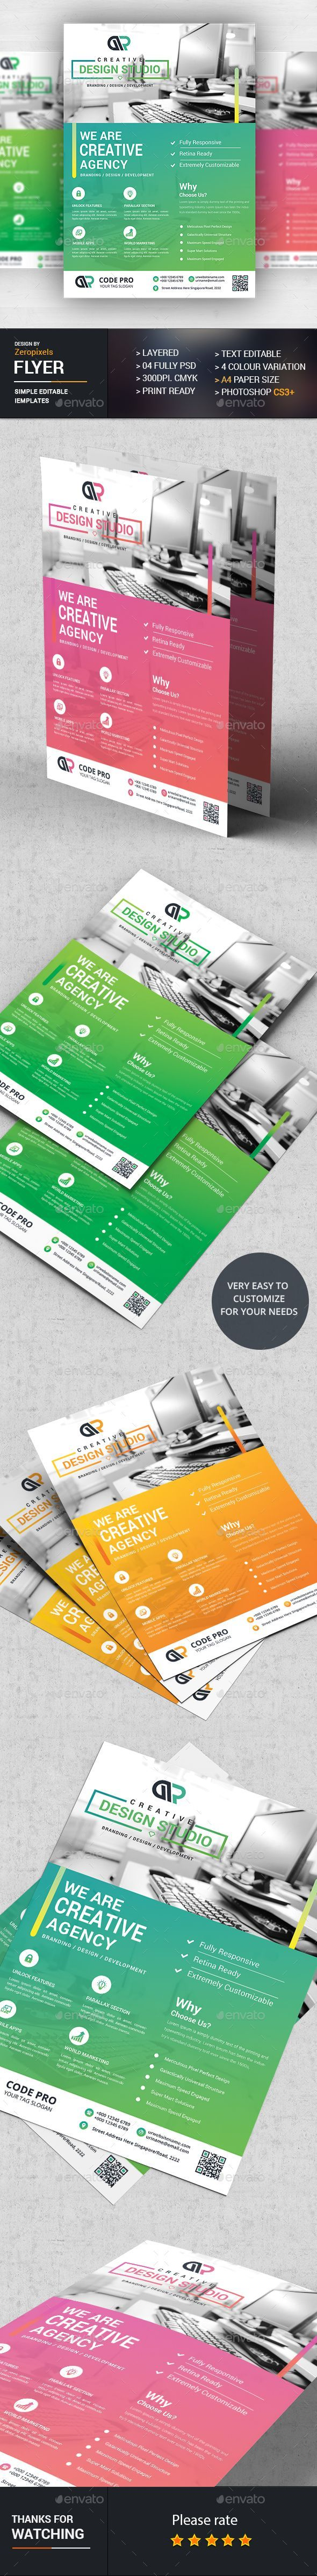 Corporate Web Flyer Design  Flyers Print Template Psd Download